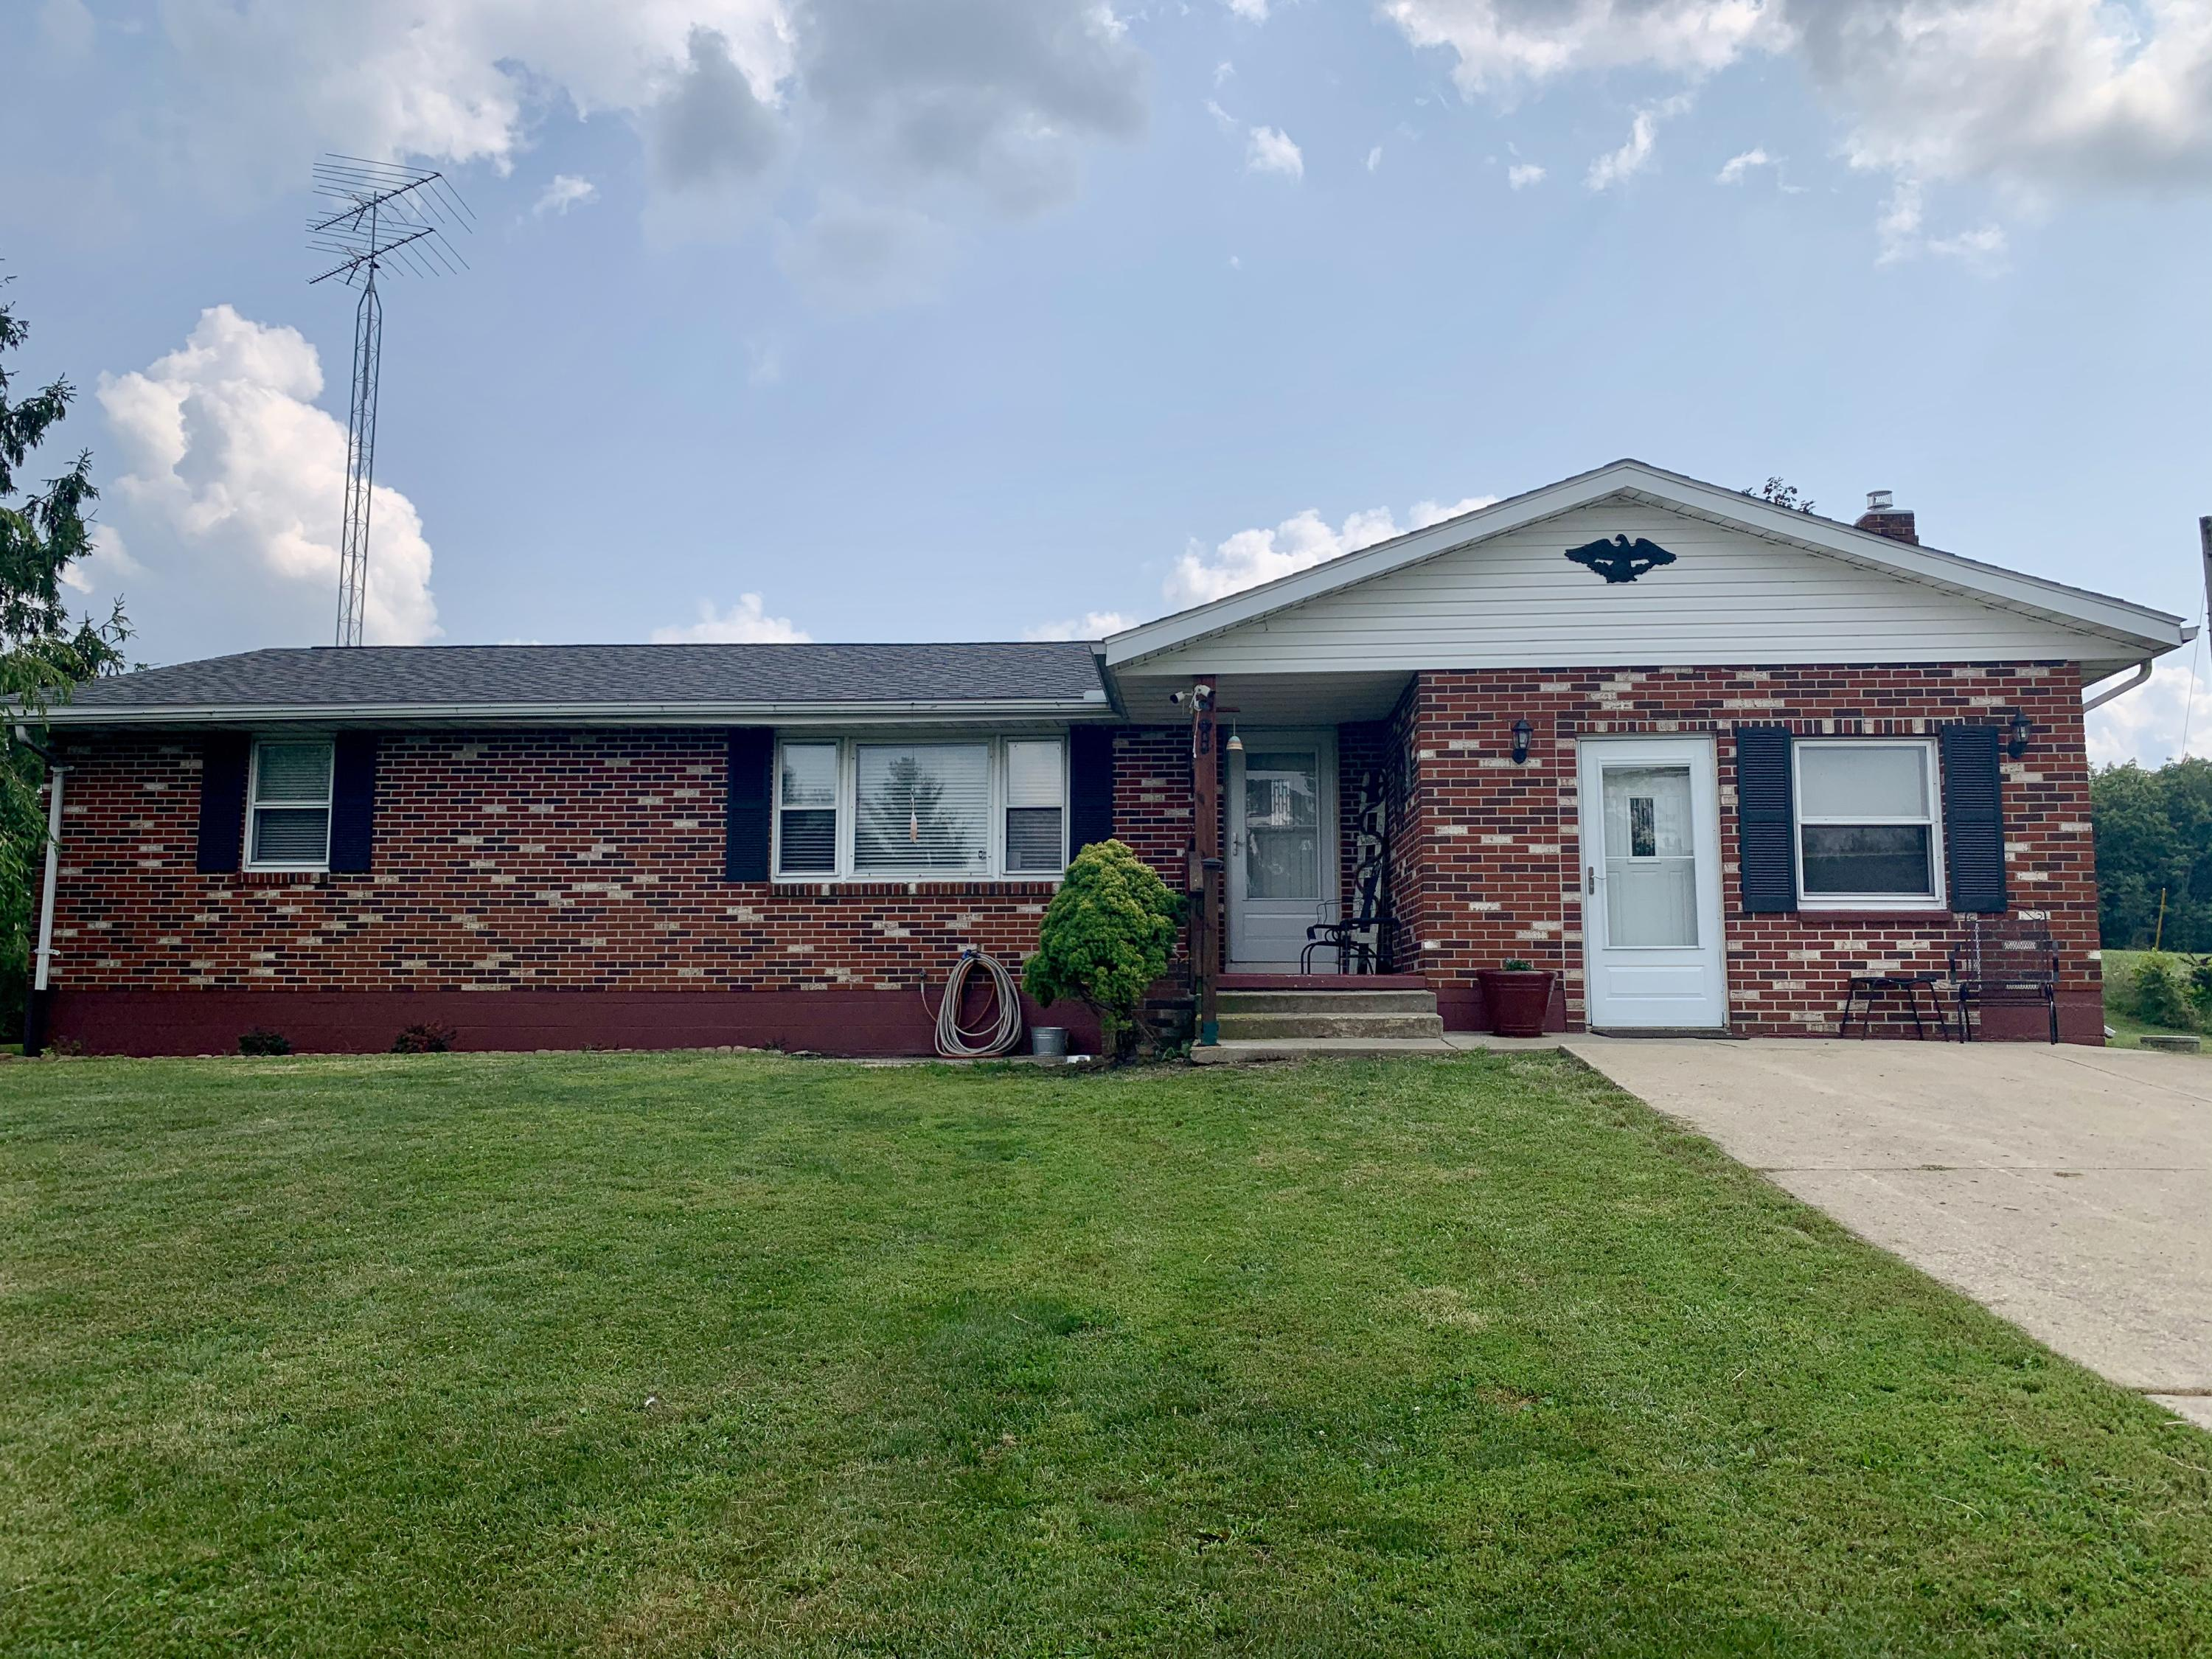 6969 E State Route 245 Property Photo - North Lewisburg, OH real estate listing